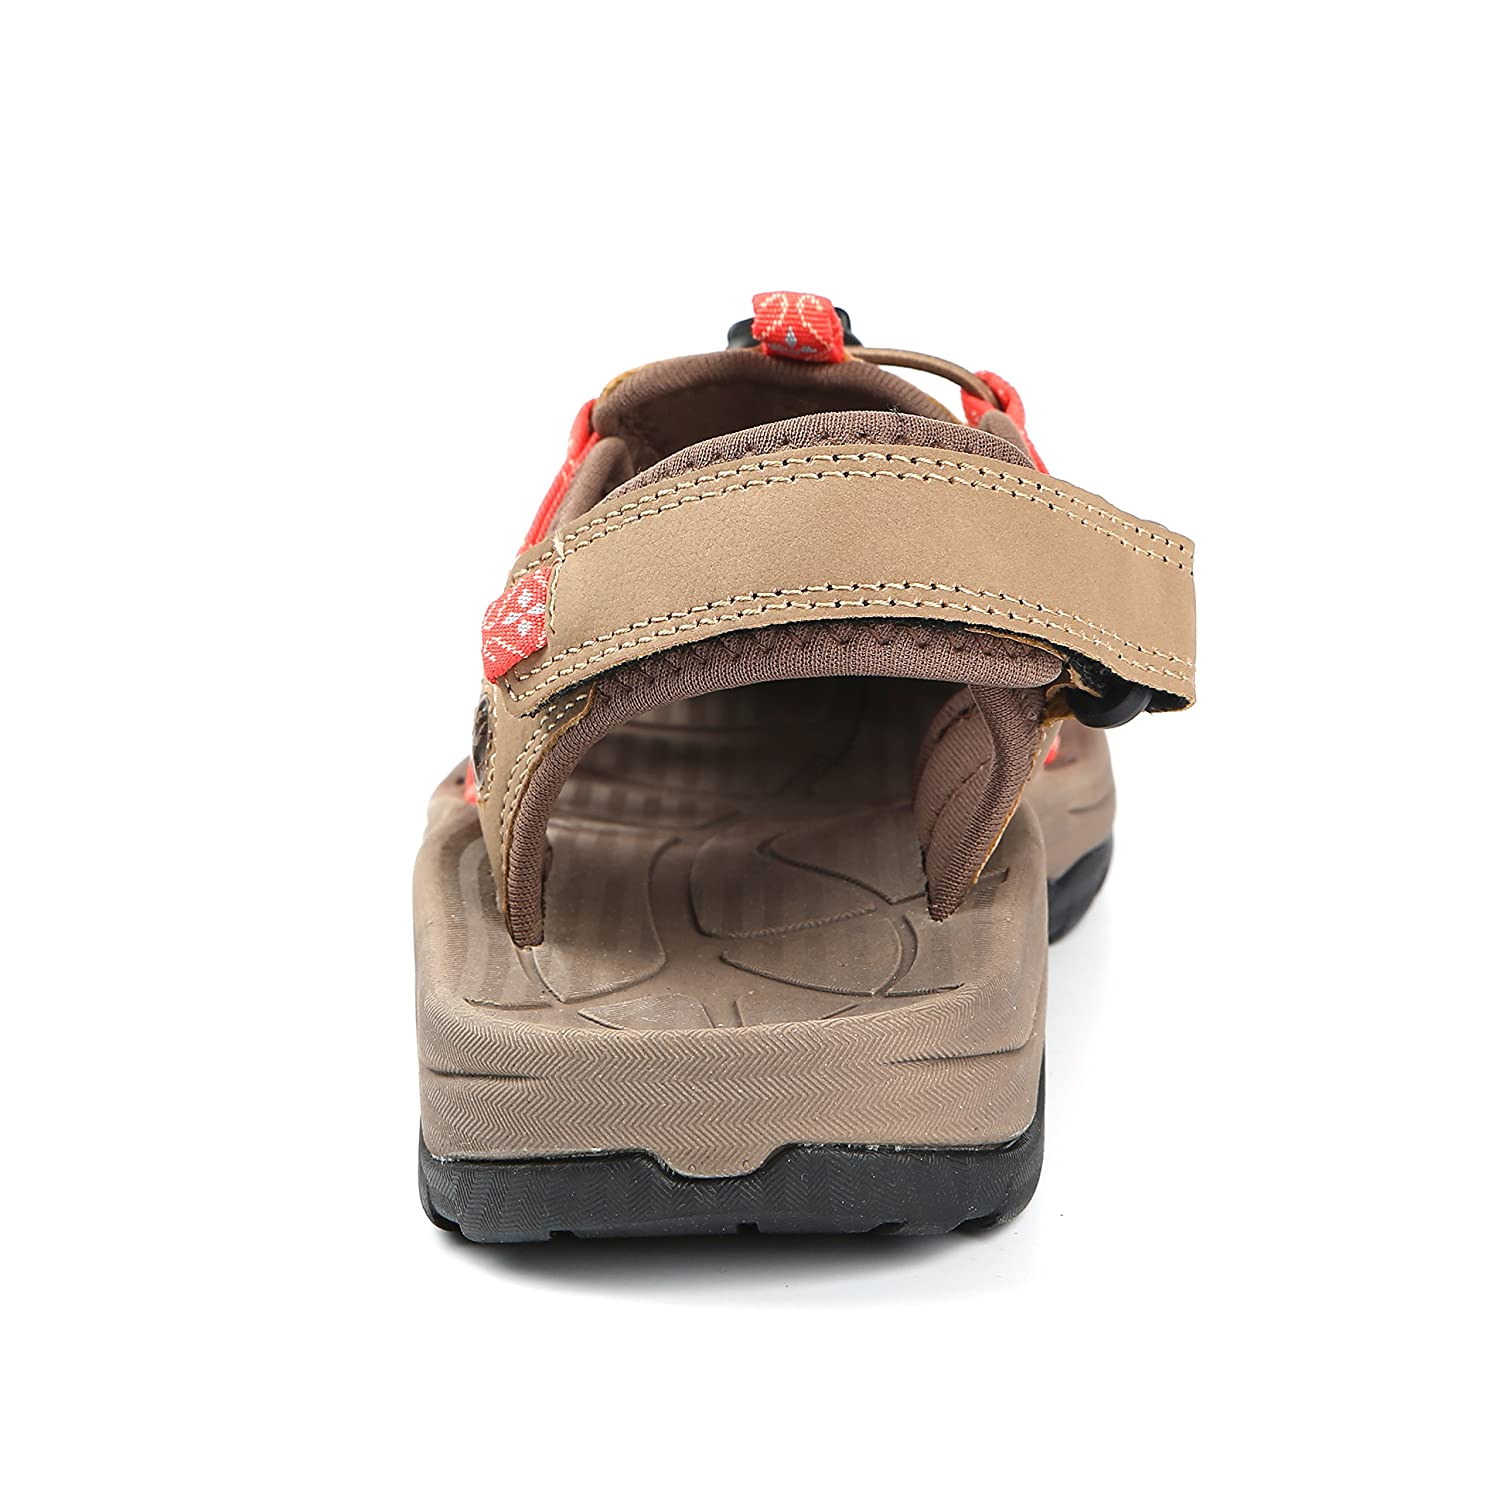 Northside Womens Savannah Sport Closed Toe Sandal B079THC2V2 9 B(M) US|Tan/Coral